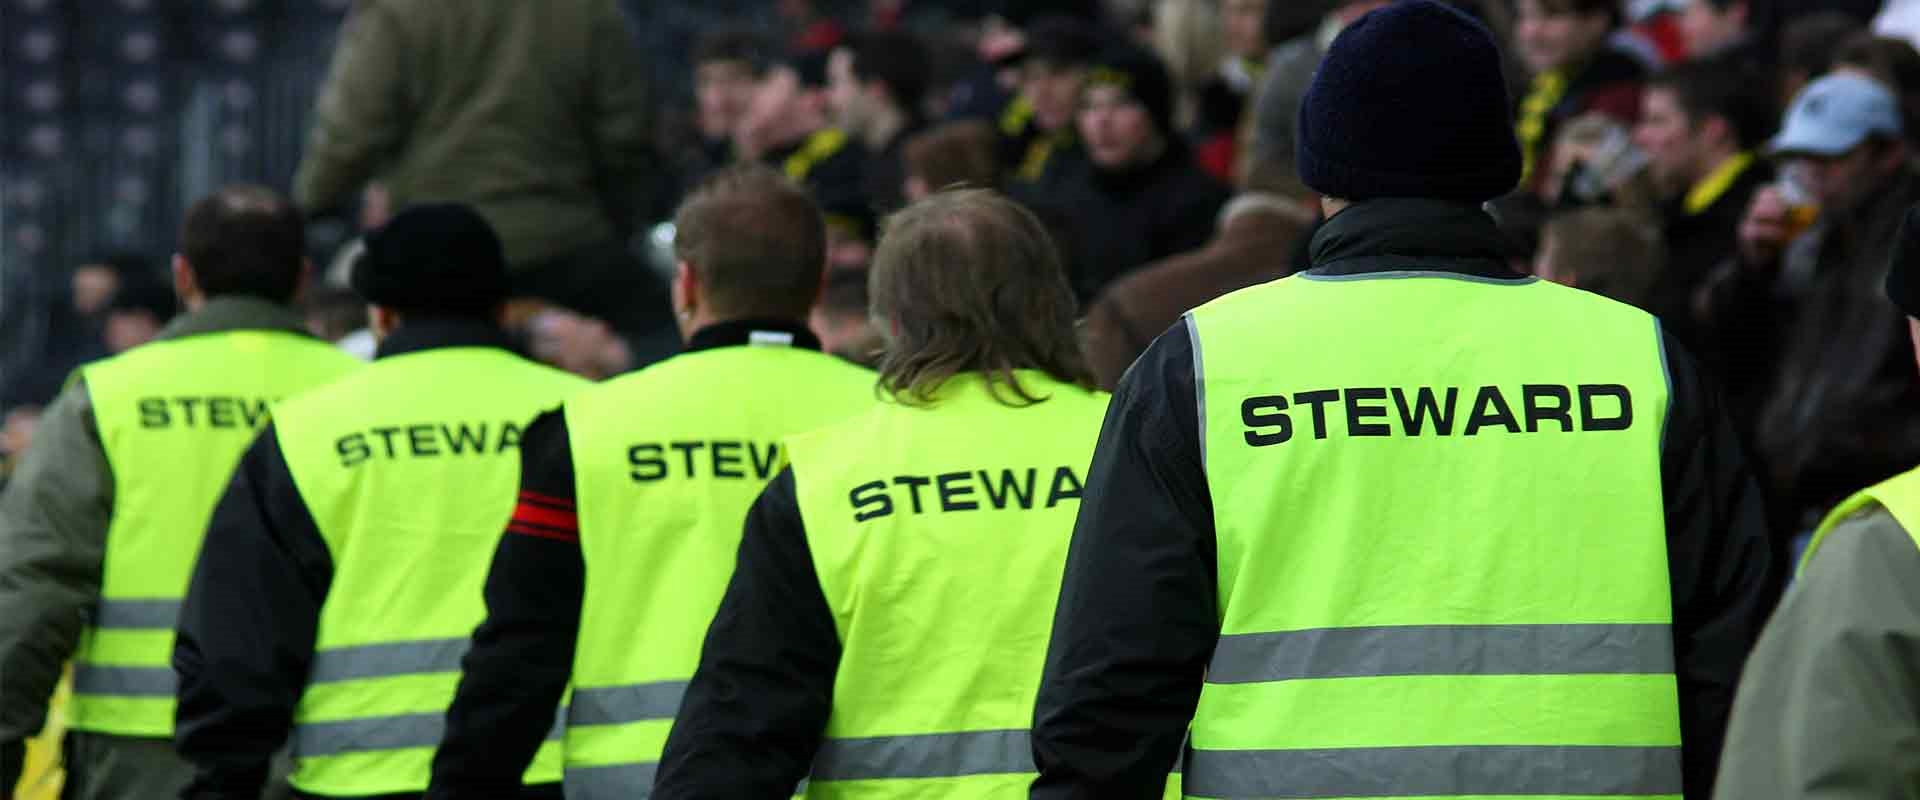 Event Stewards South West Wales